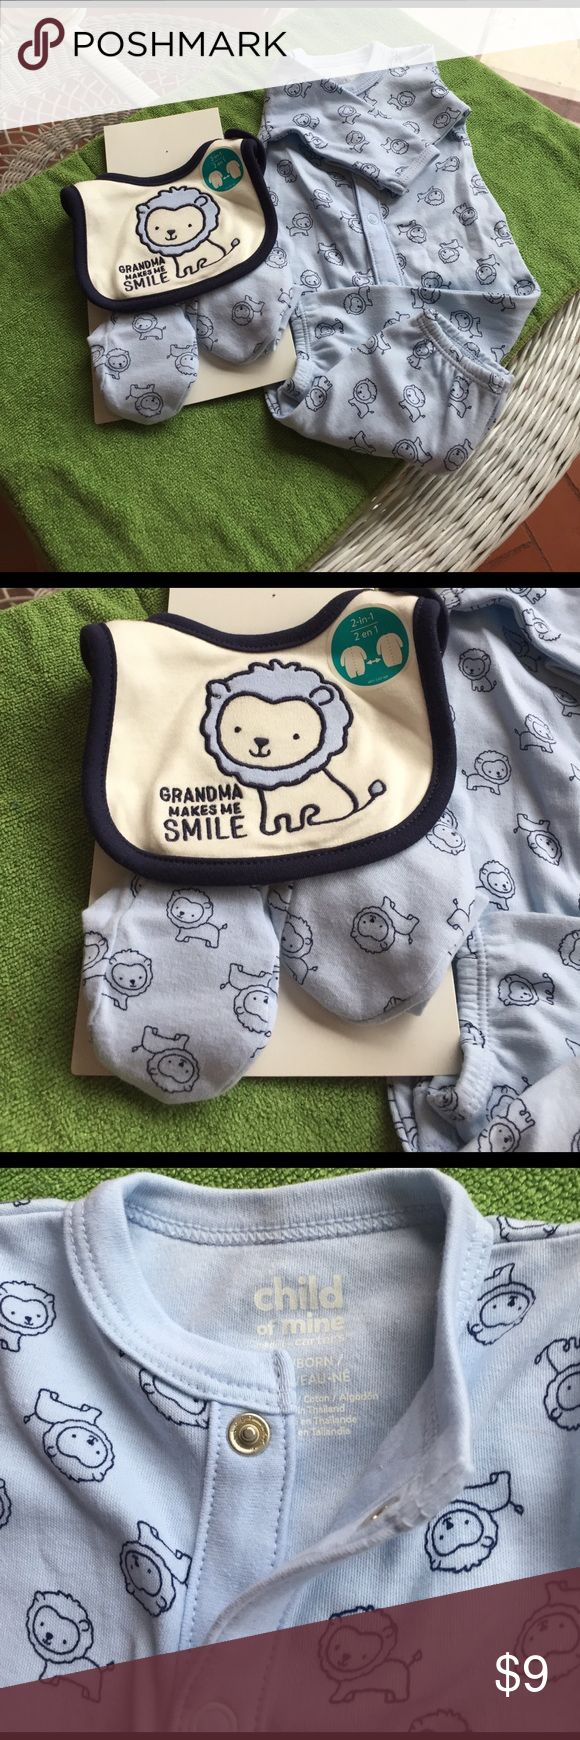 Two in one onesie. Bib and booties NB nwot This is a child of mine onesie that snaps and converts to a gown.it's a size newborn it's new without tags and it also comes with a grandma makes me smile bib and booties.  it's adorable child of mine, Carters Matching Sets